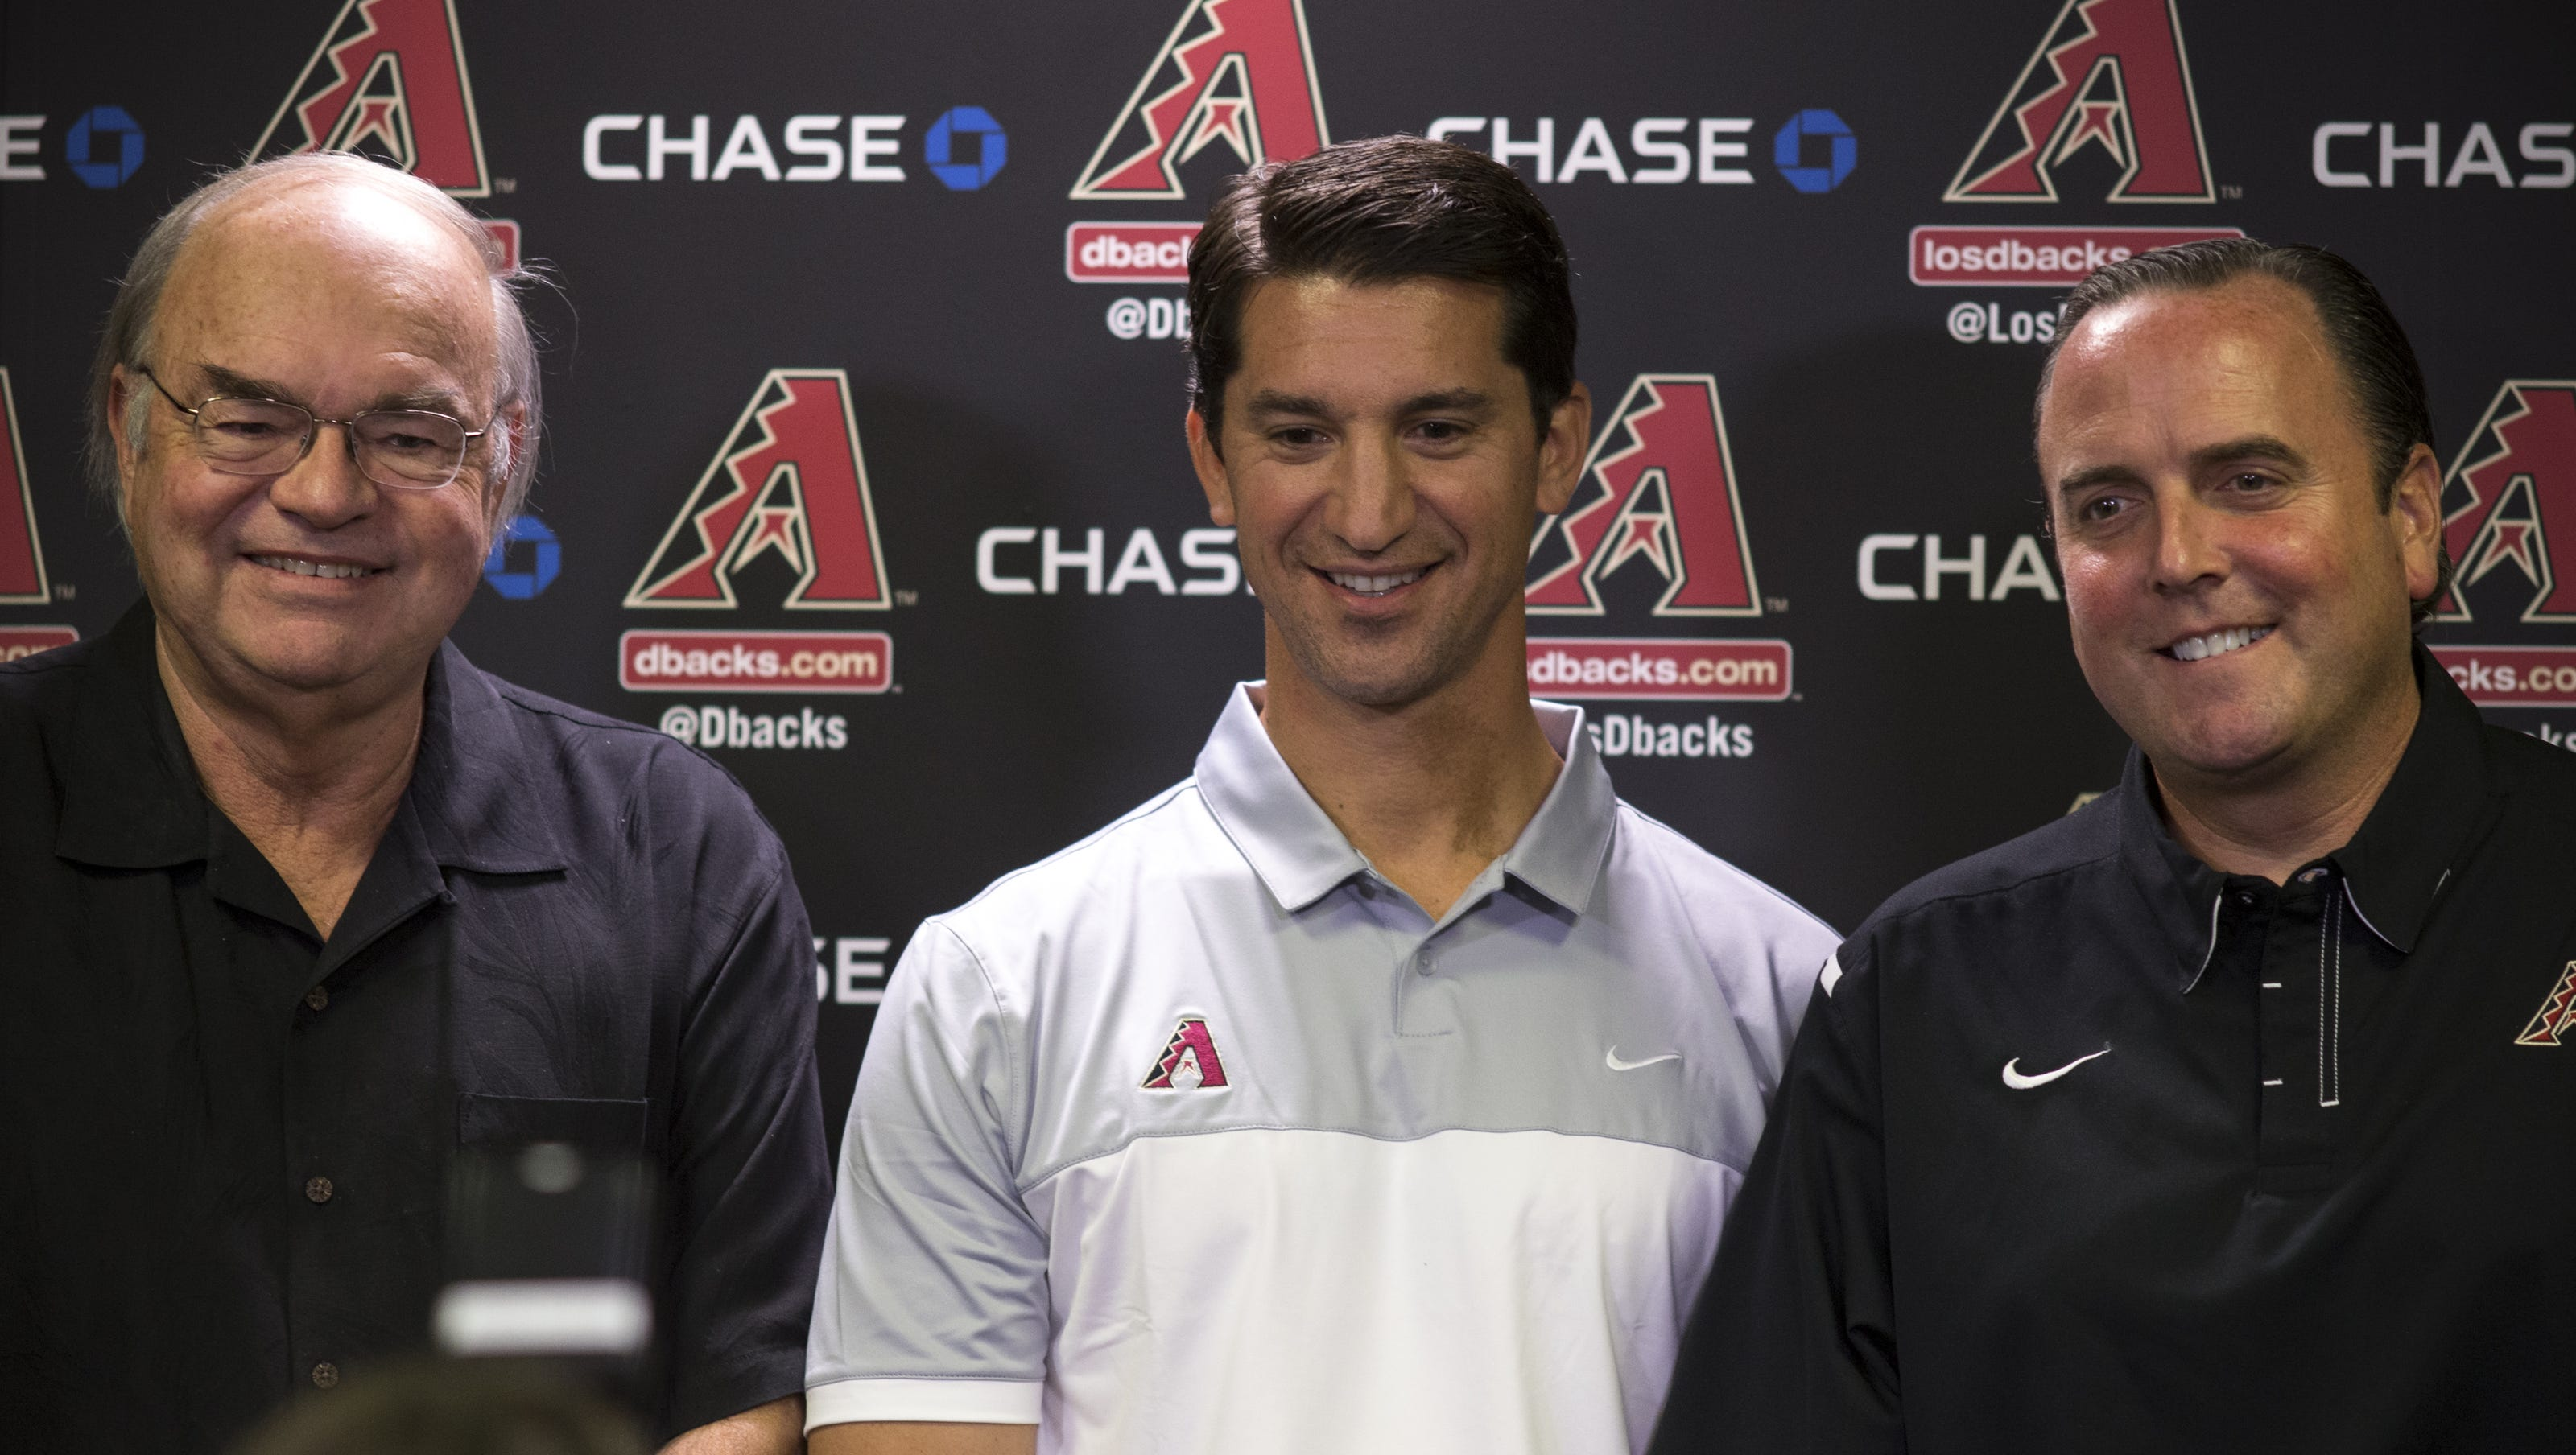 The big question is whether or not the Diamondbacks will make moves or not during the 2020 MLB off-season